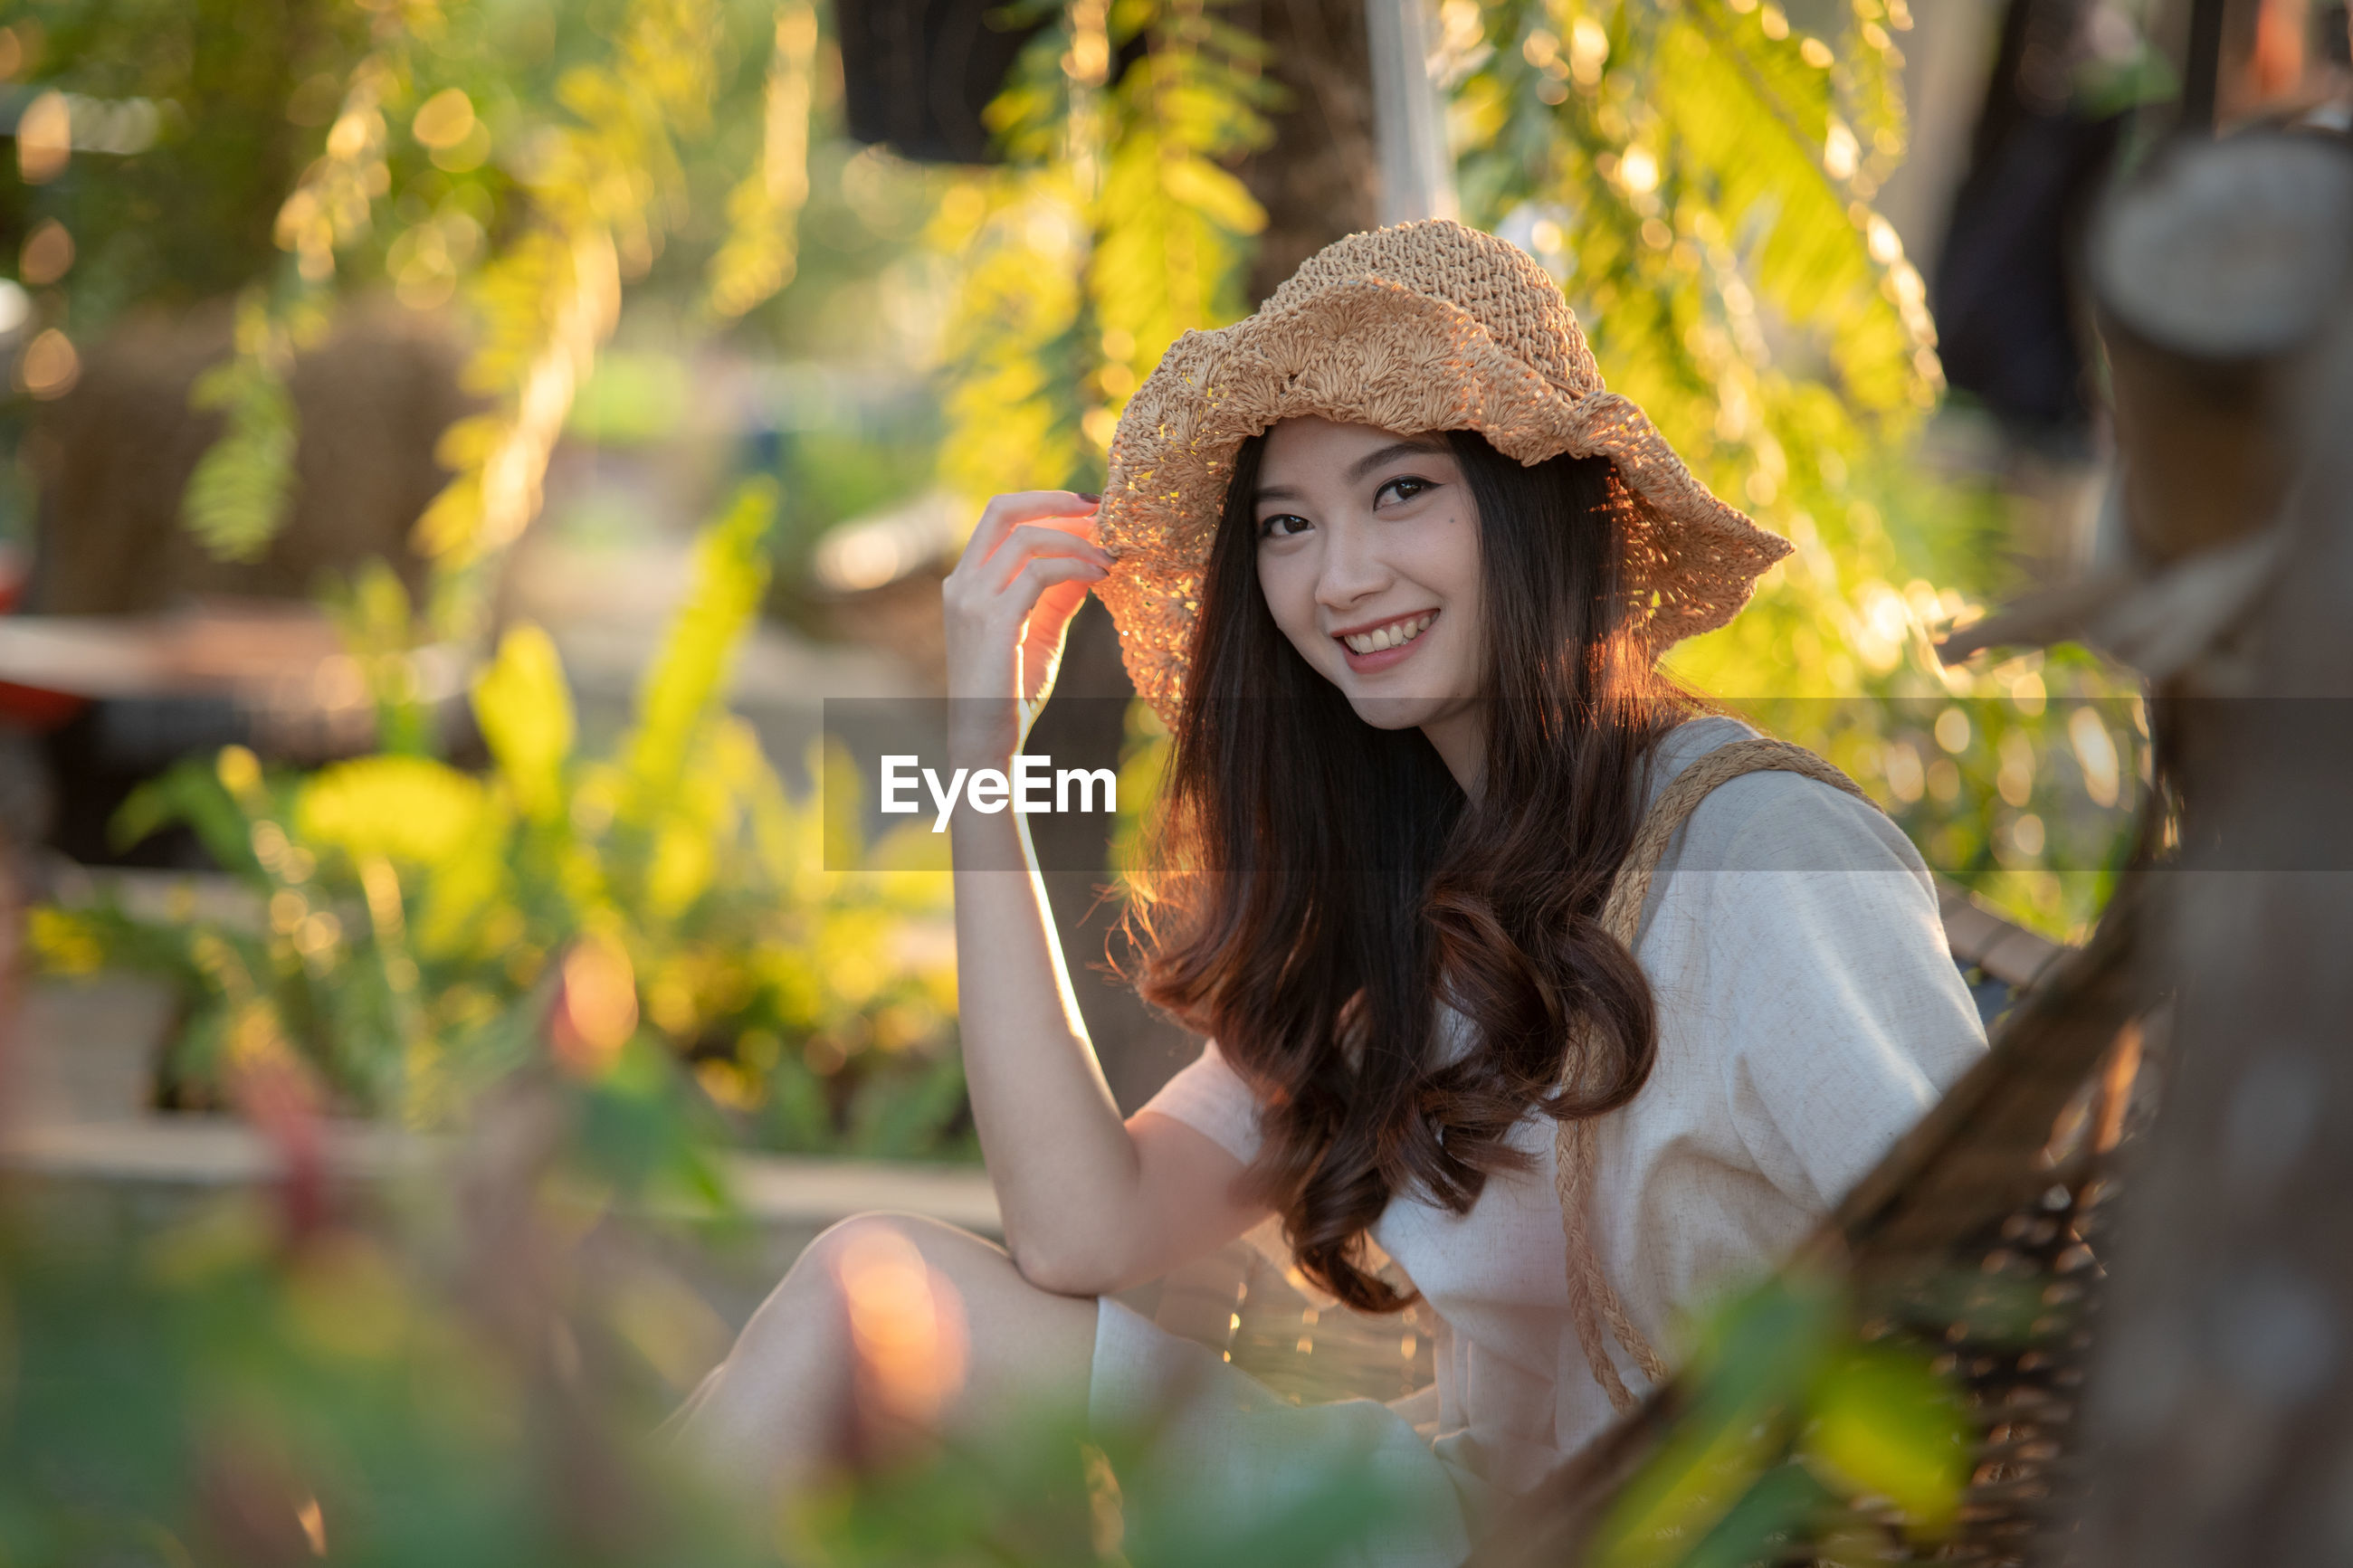 Portrait of smiling young woman wearing hat against plants